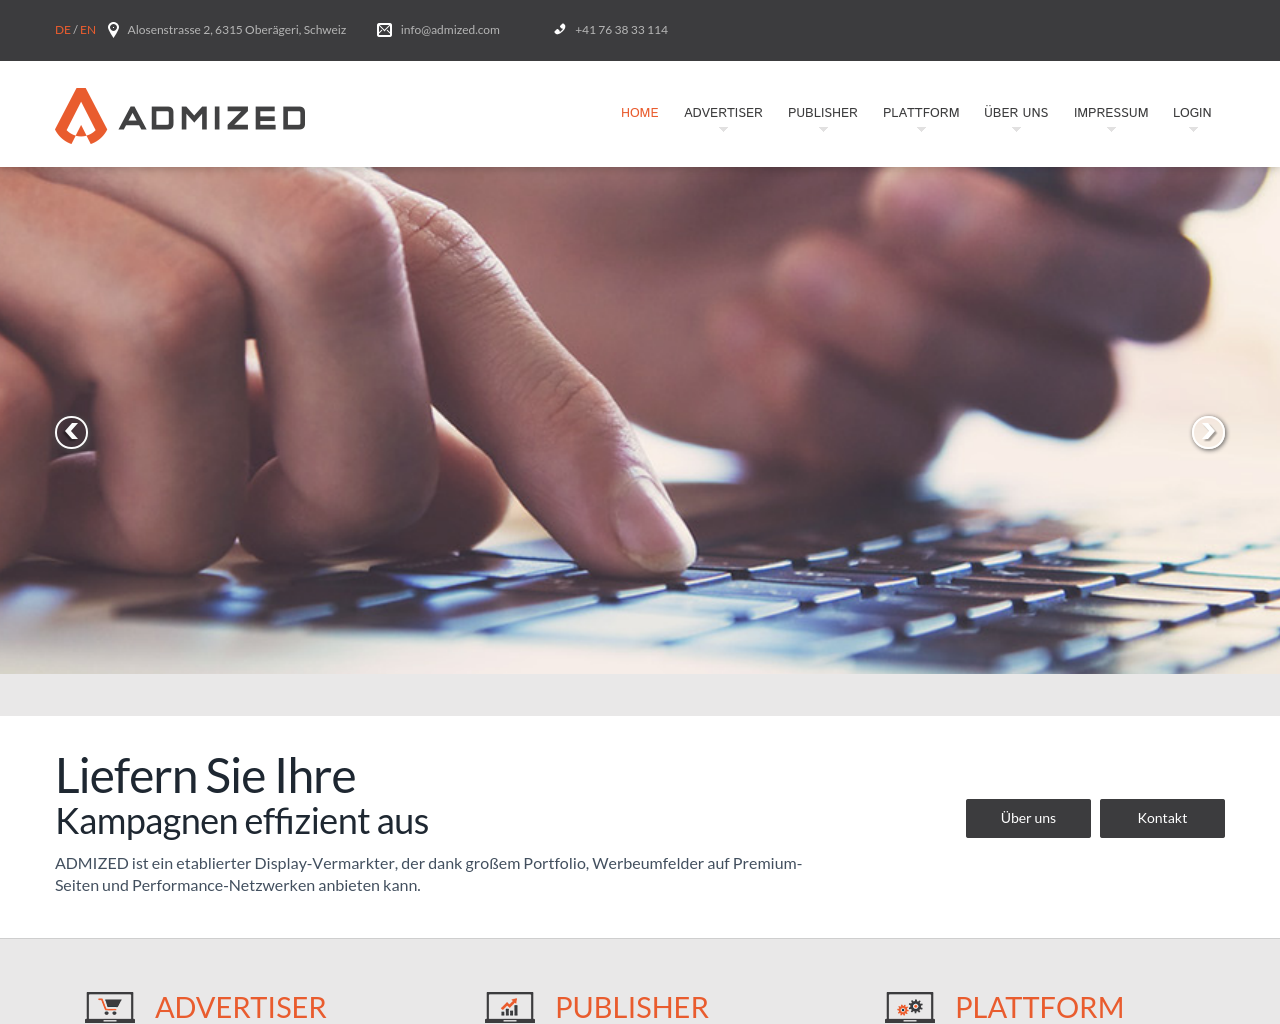 ADMIZED-Advertising-Reviews-Pricing